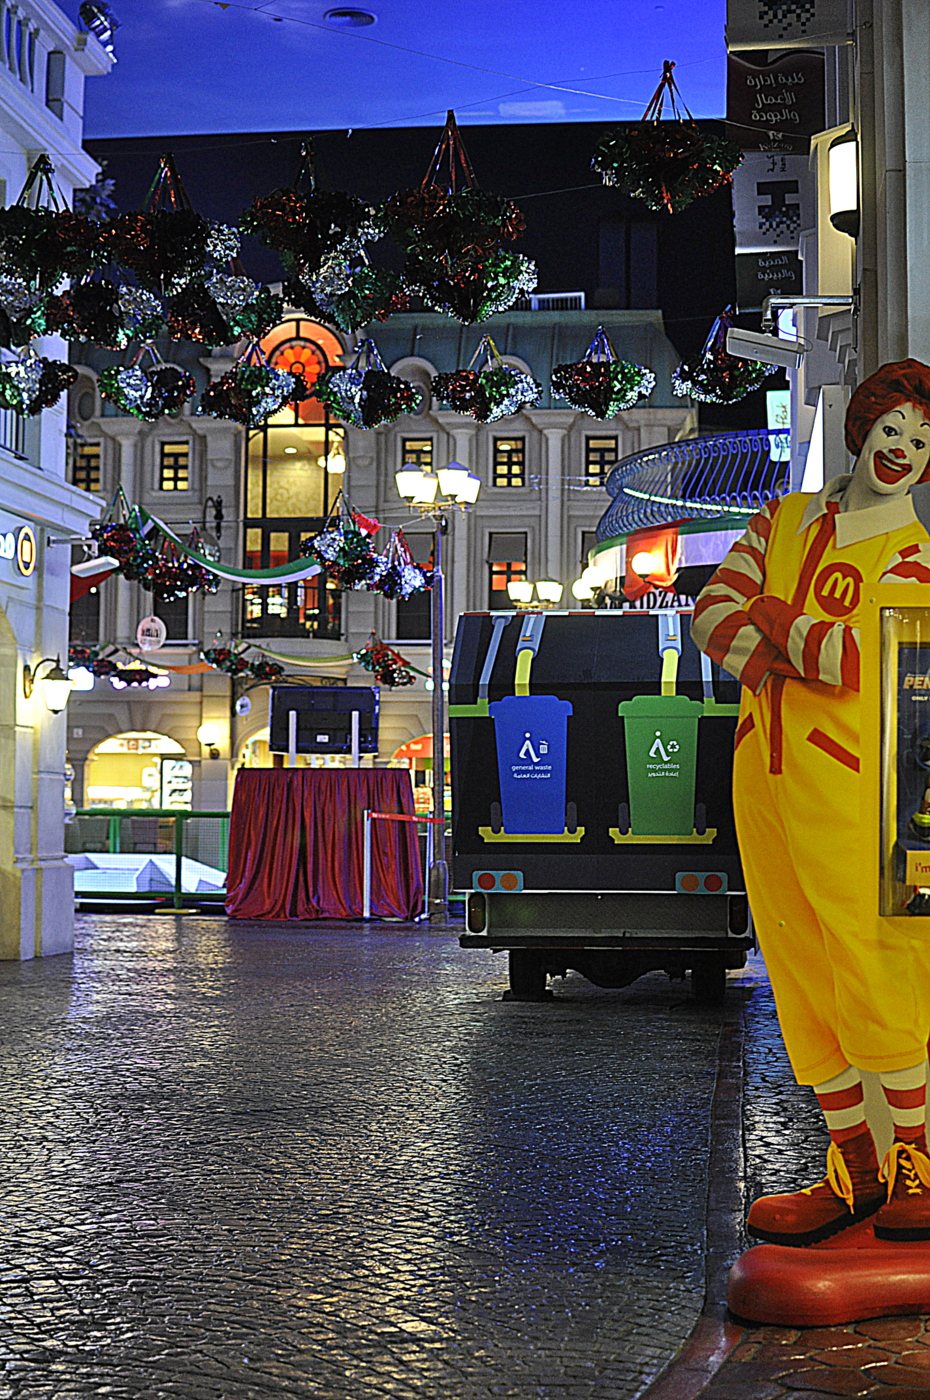 KidZania - Dubai - a child-sized city run by kids, for kids